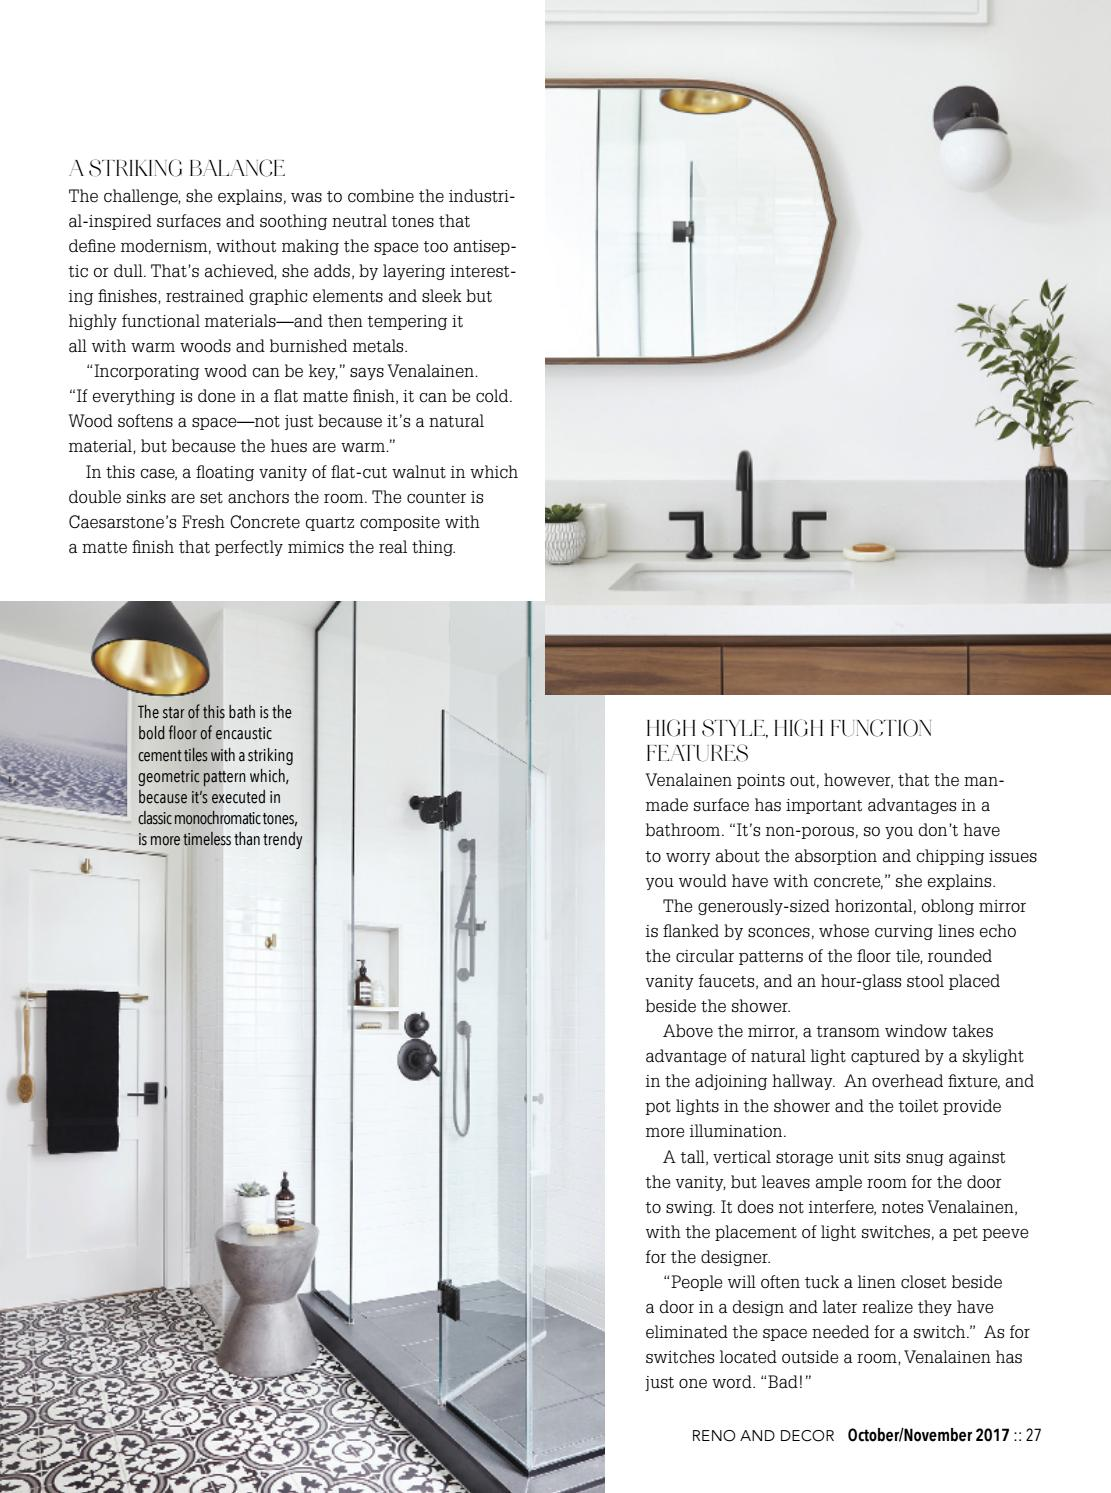 Reno U0026 Decor Magazine   Oct/Nov 2017 By HOMES Publishing Group   Issuu